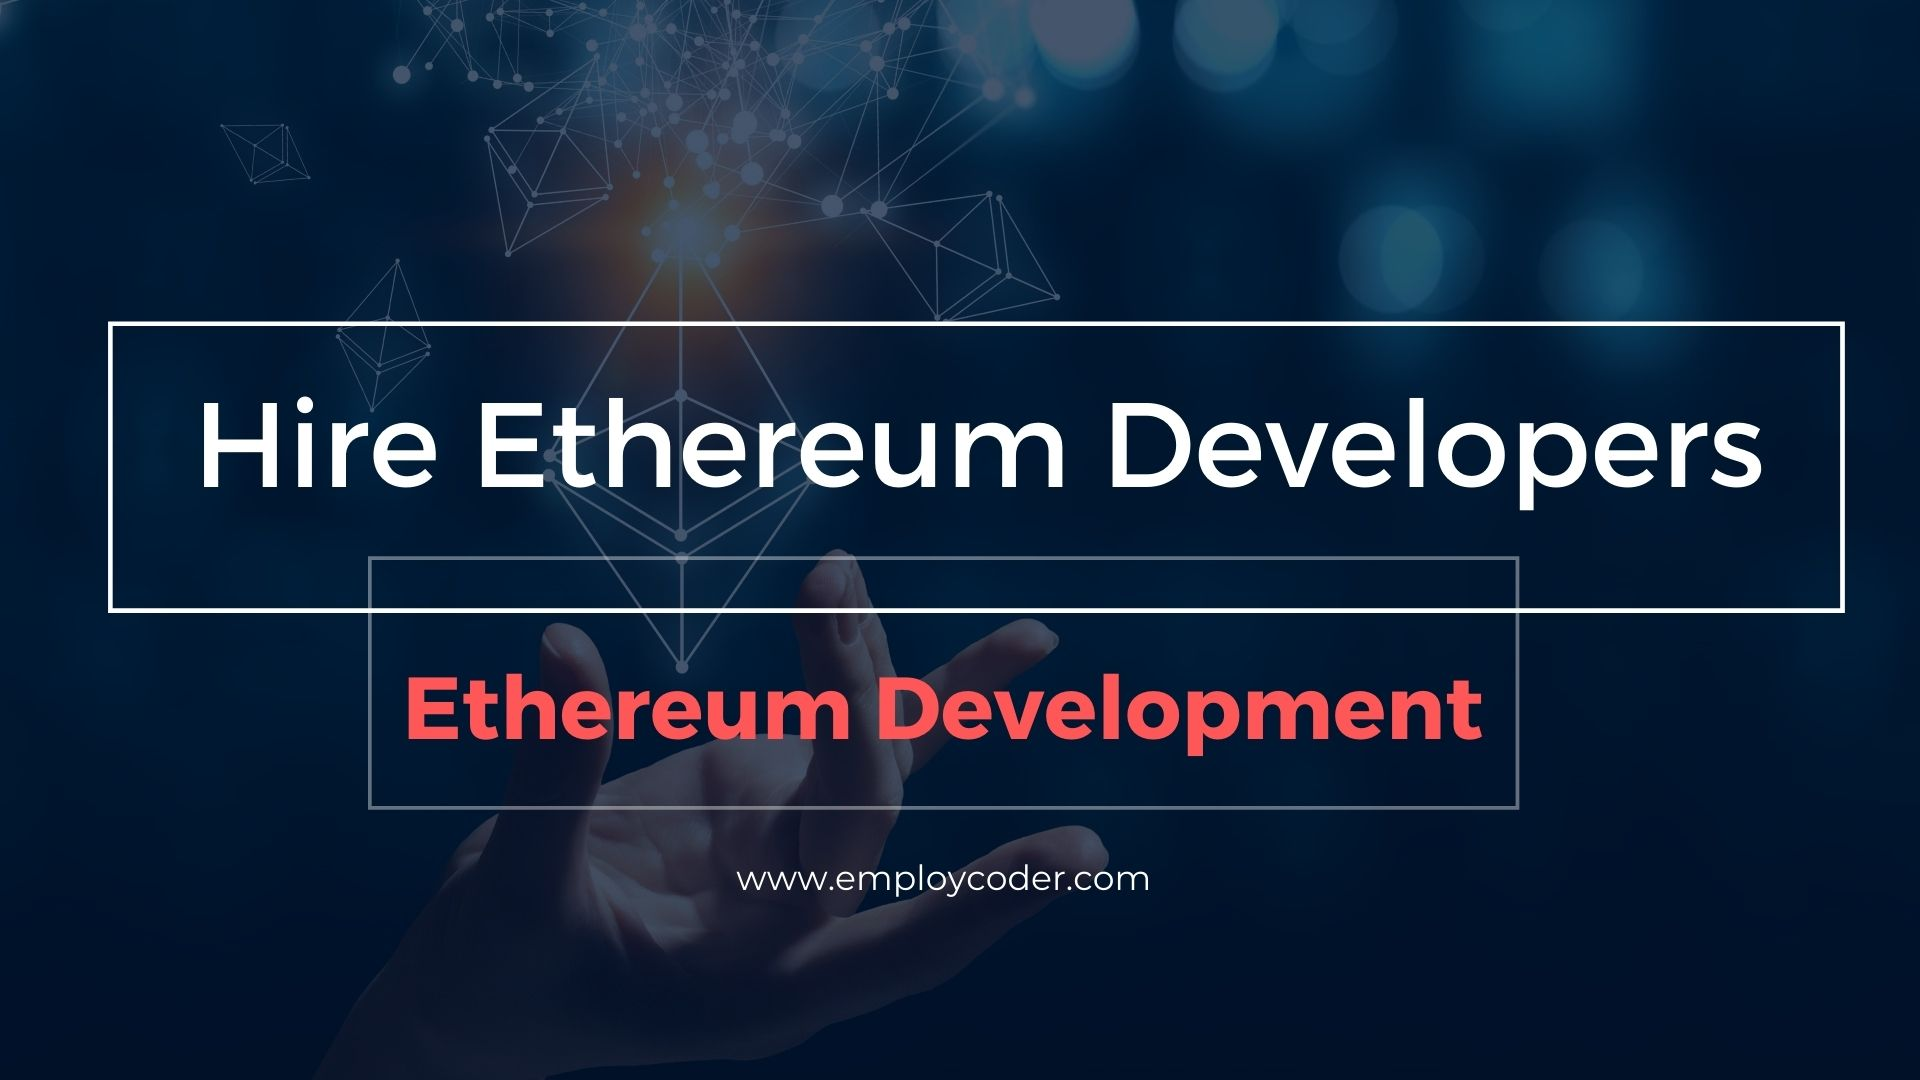 Hire Ethereum Developers To Develop and Deploy Robust Ethereum Applications